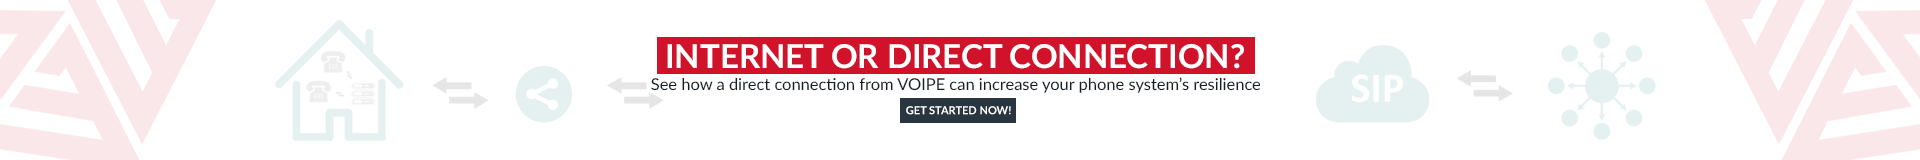 Take a look at our cloud telephone system connection options. VOIPE can provide direct connection options to suit all budgets